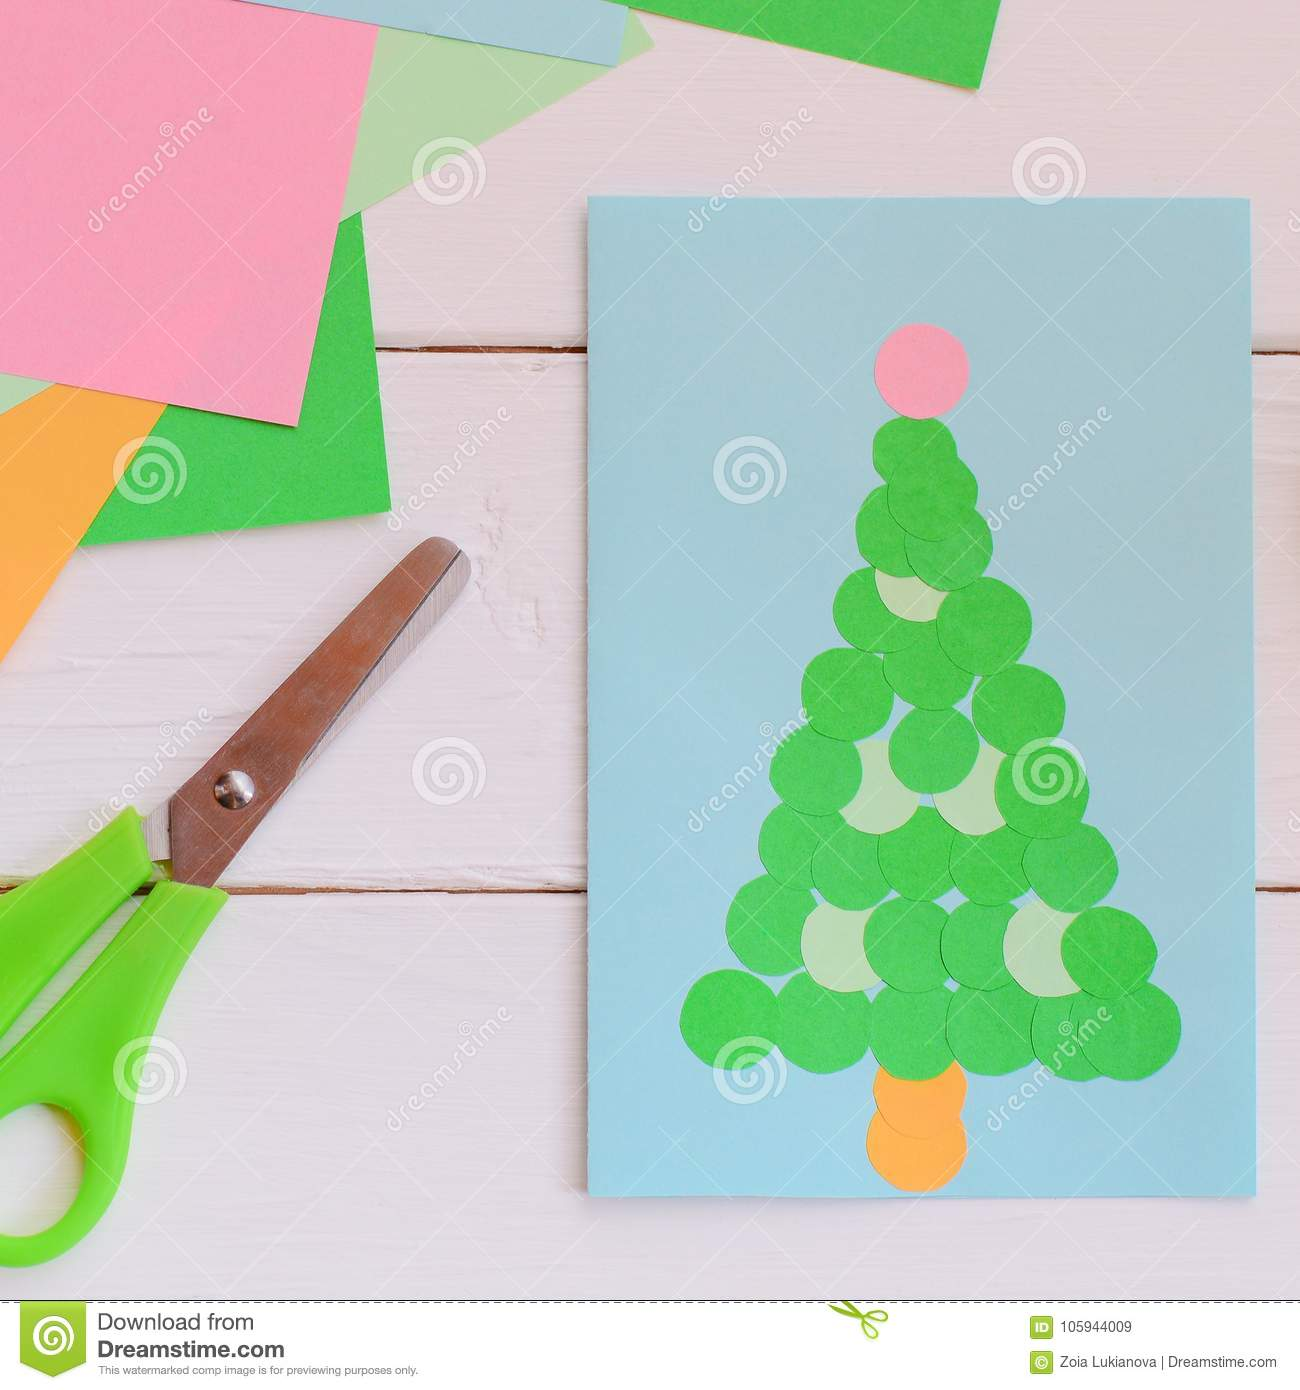 Lovely postcard with a christmas tree christmas greeting card made christmas card idea easy homemade christmas card making christmas card christmas card ideas for toddlers childrens christmas cards m4hsunfo